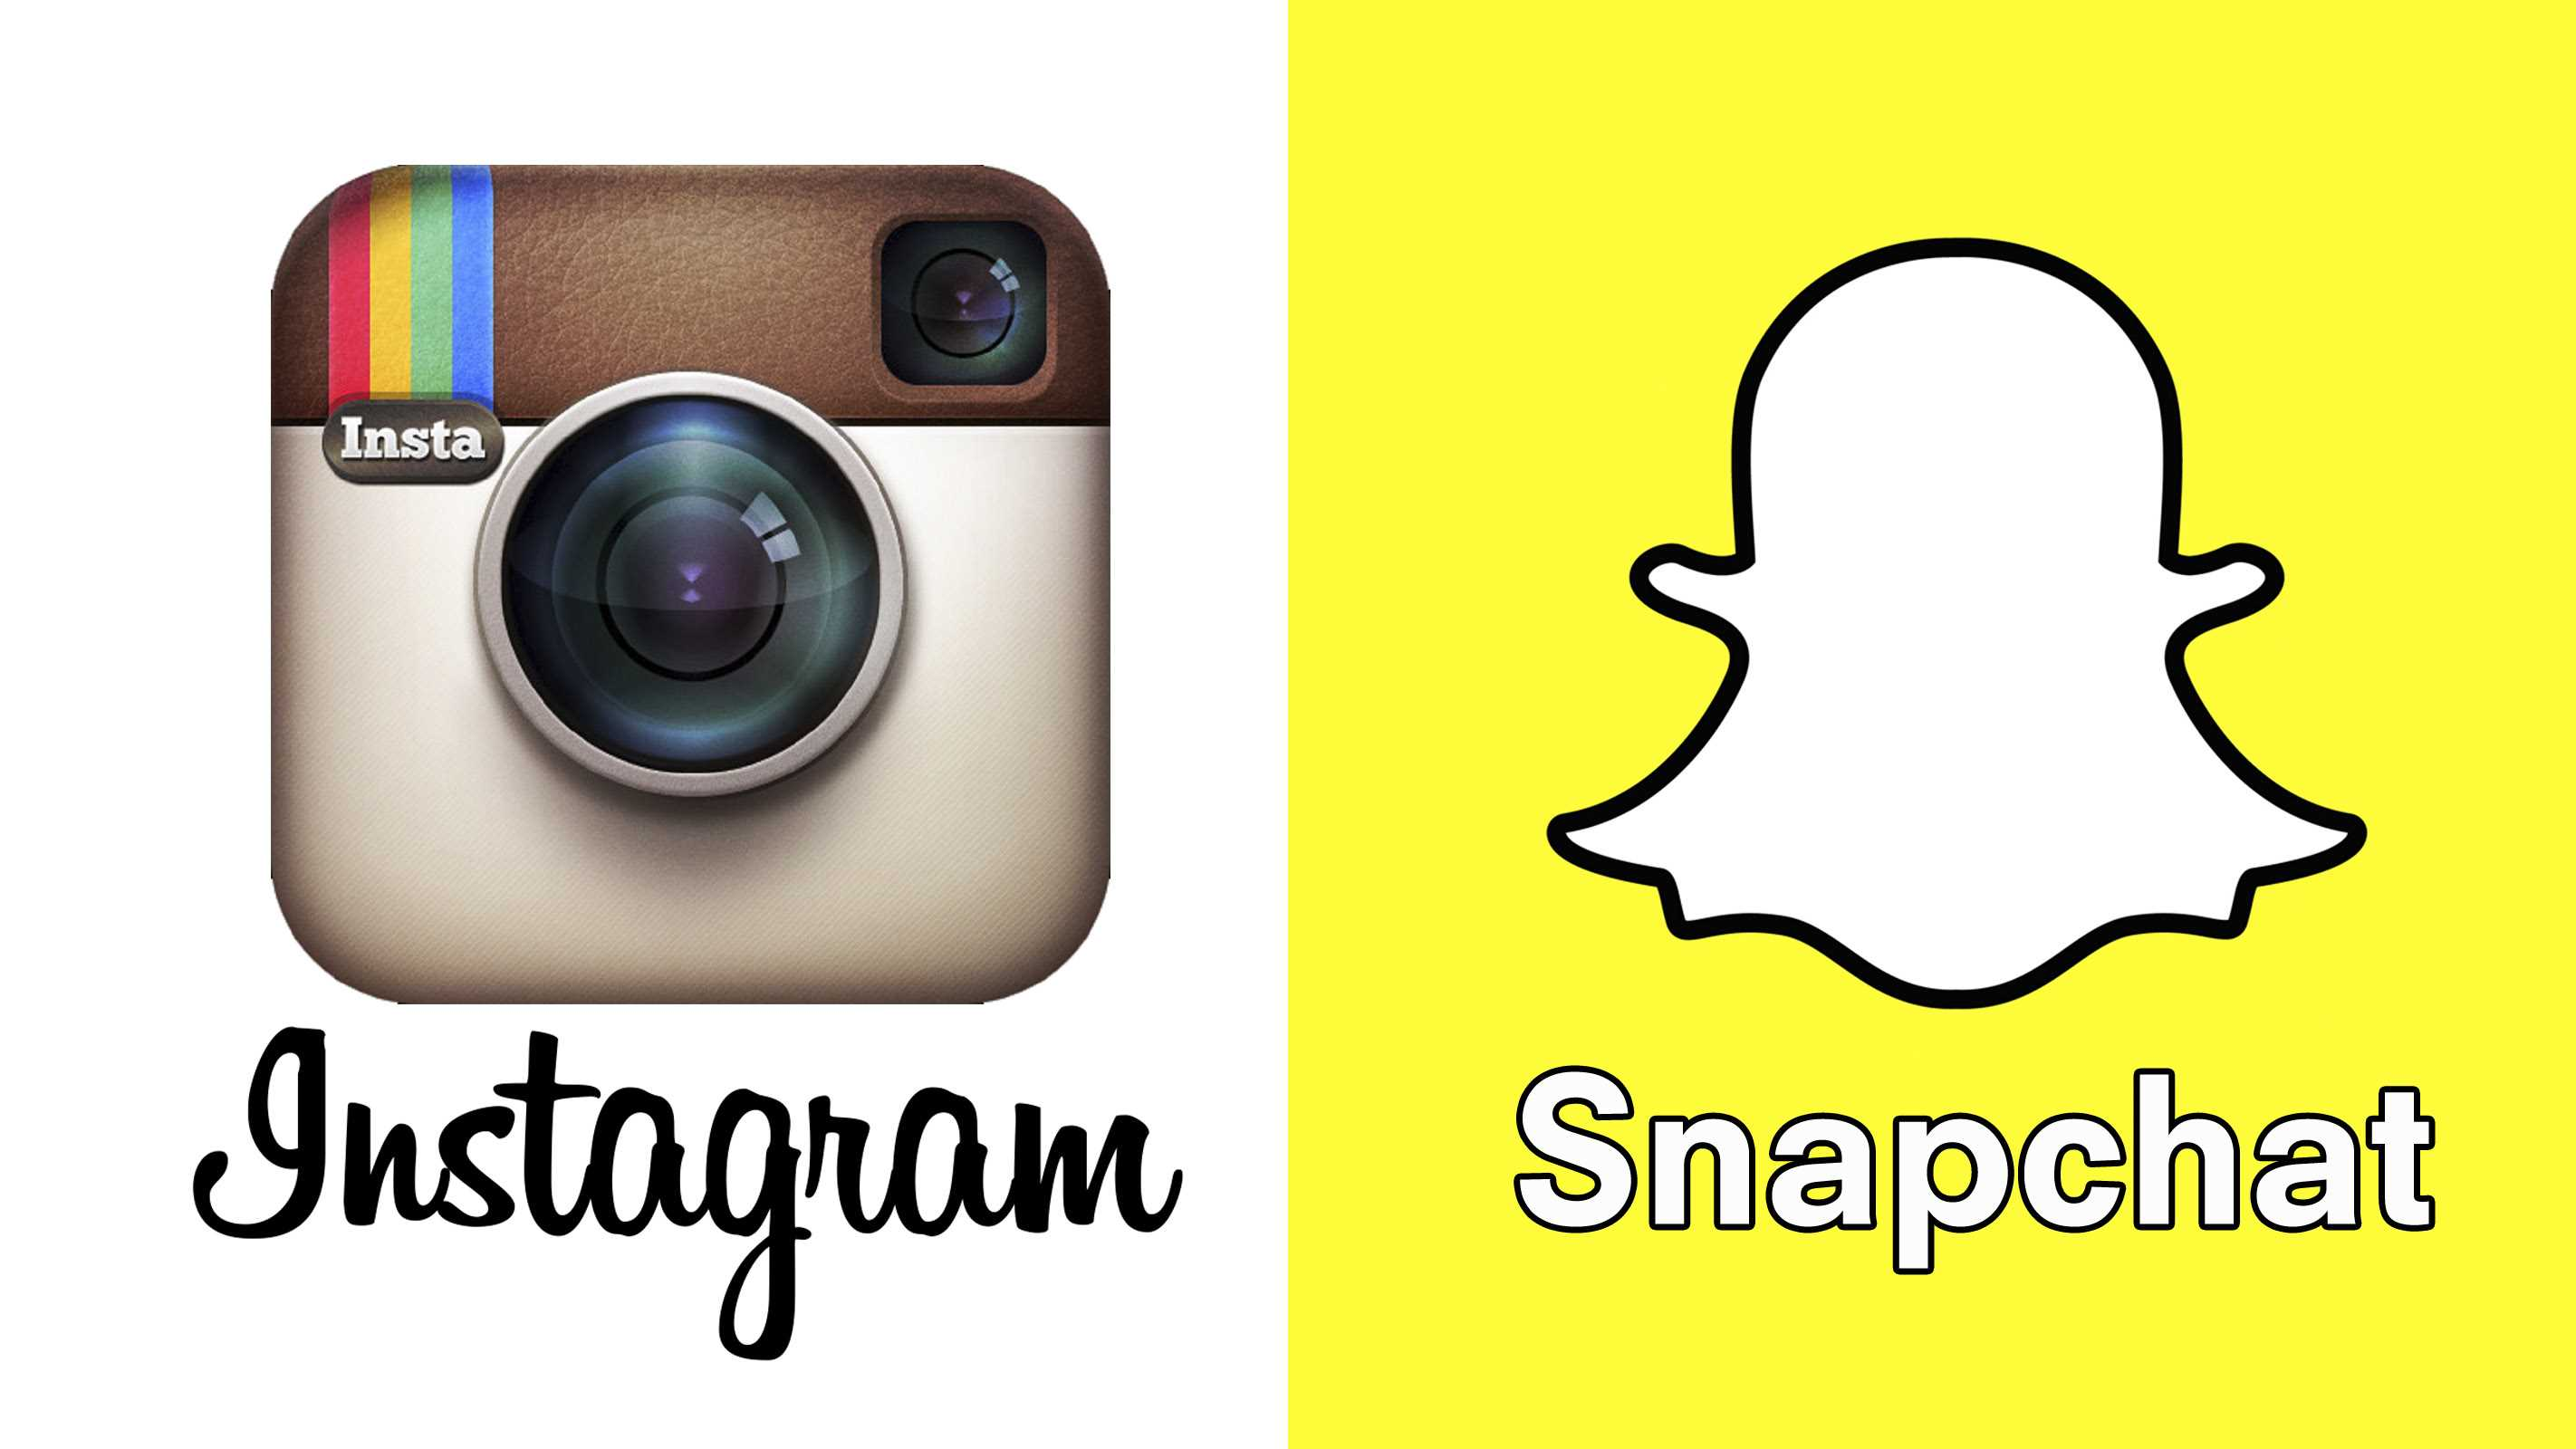 Snapchat - The fastest way to share a moment